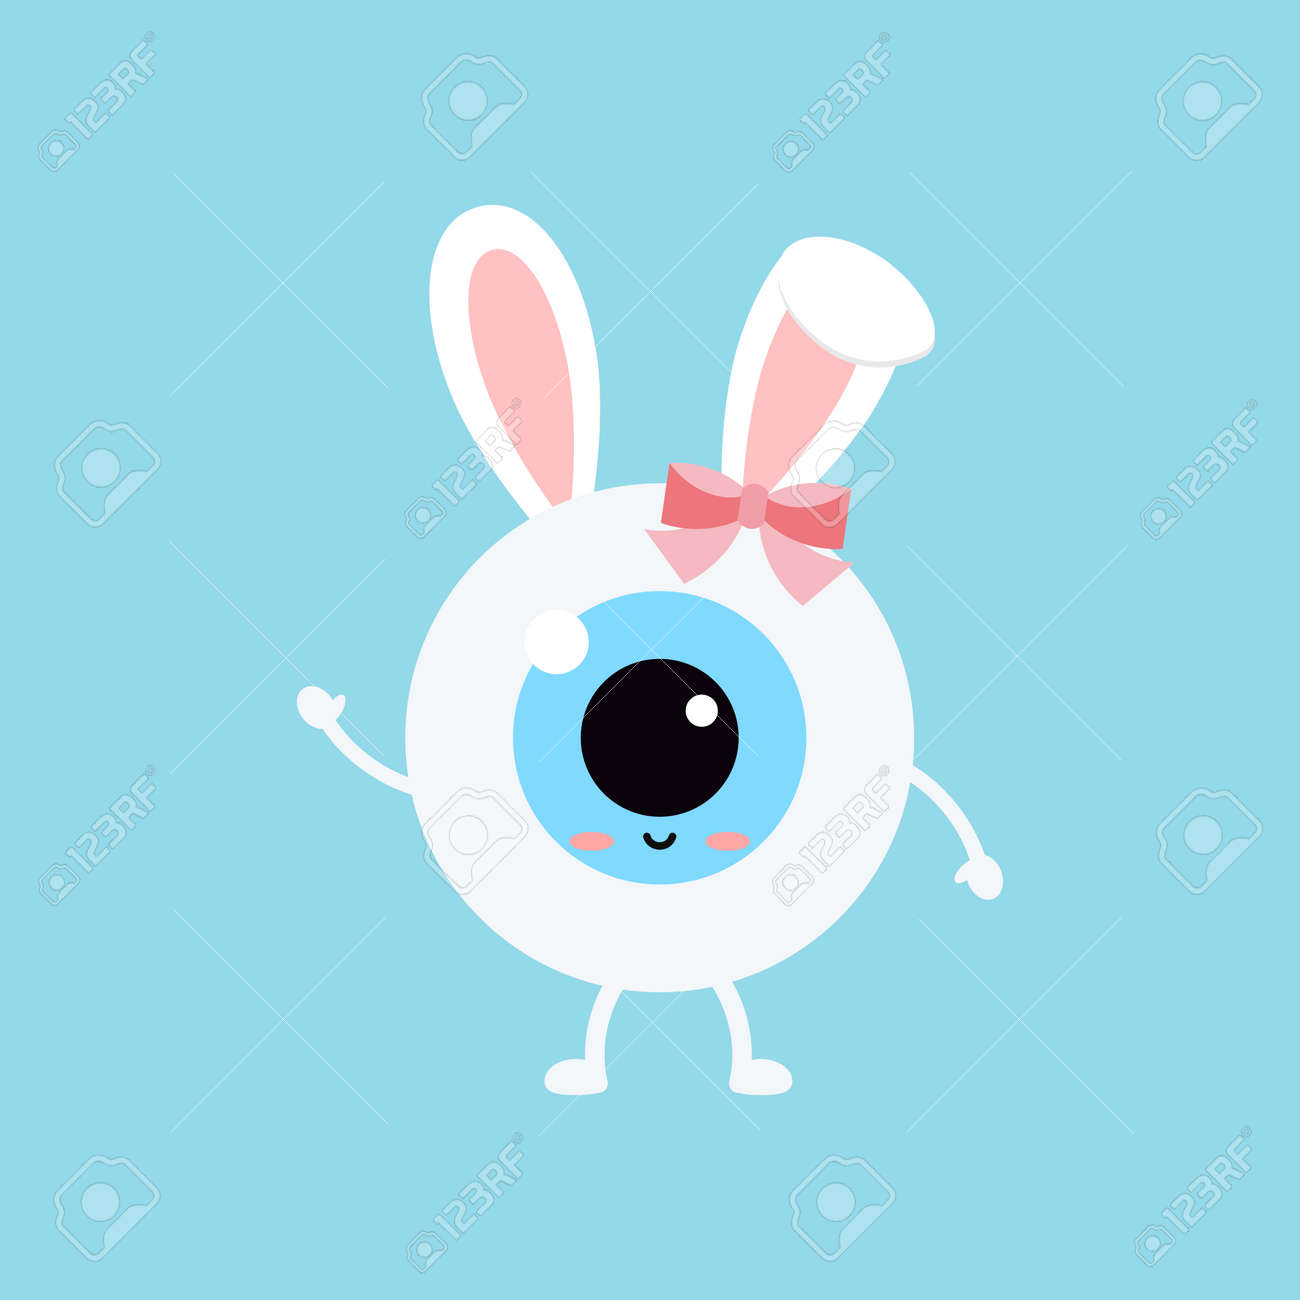 Easter cute eye ball with bunny ears icon. Ophthalmology eyeball girl character with face and easter bunny rabbit ears costume with bow. Flat design cartoon style vector vision clip art illustration. - 165386607